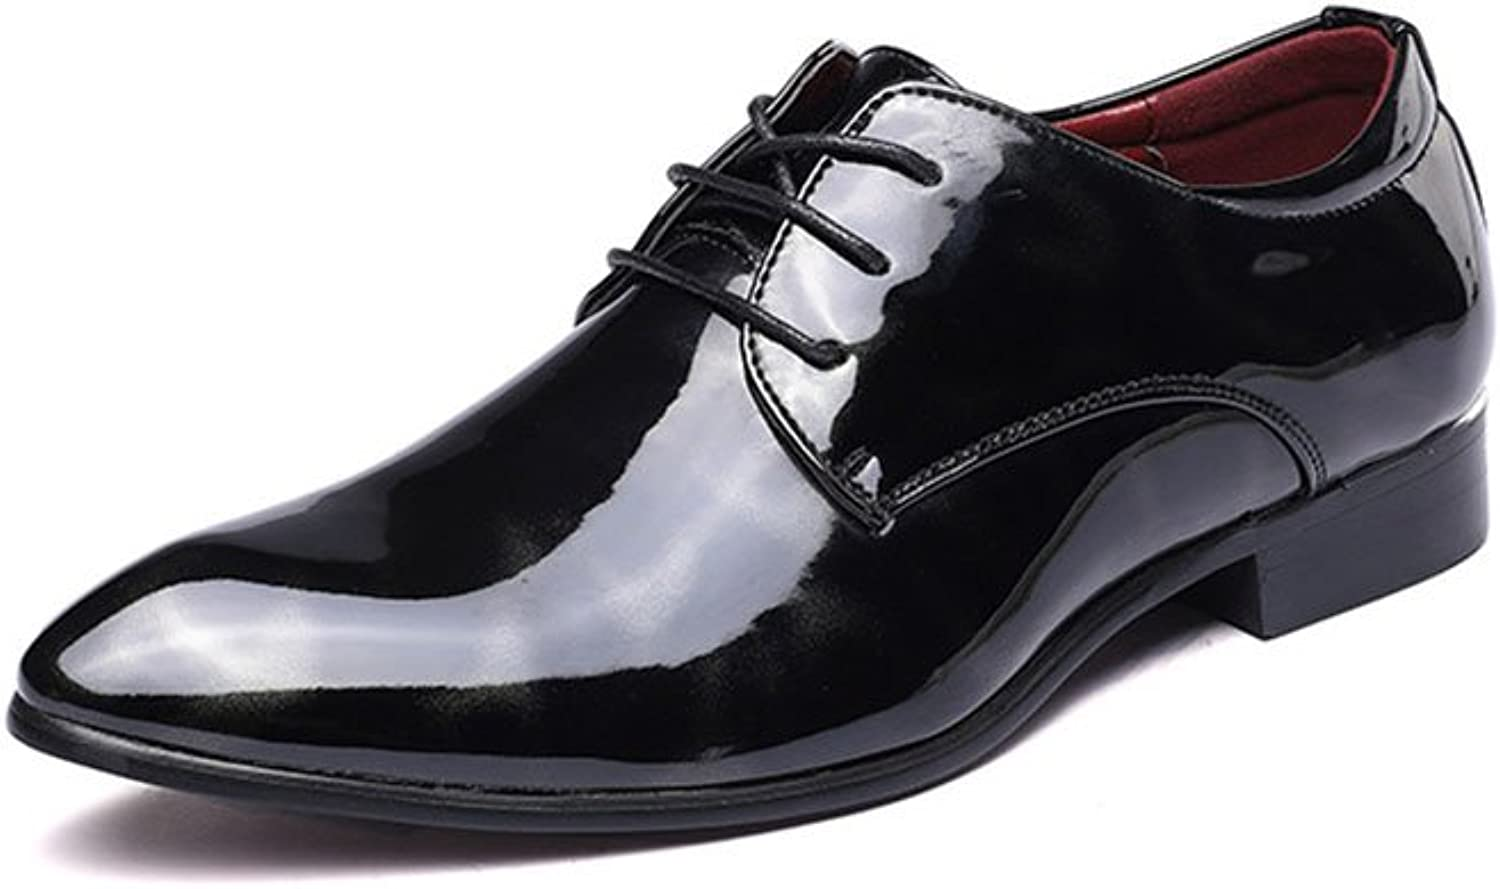 Men's Leather shoes Men's Fashion Leather Formal shoes Men's shoes Leather Spring Fall Fashion Boots Formal shoes Oxfords Walking shoes Black Red bluee Wedding